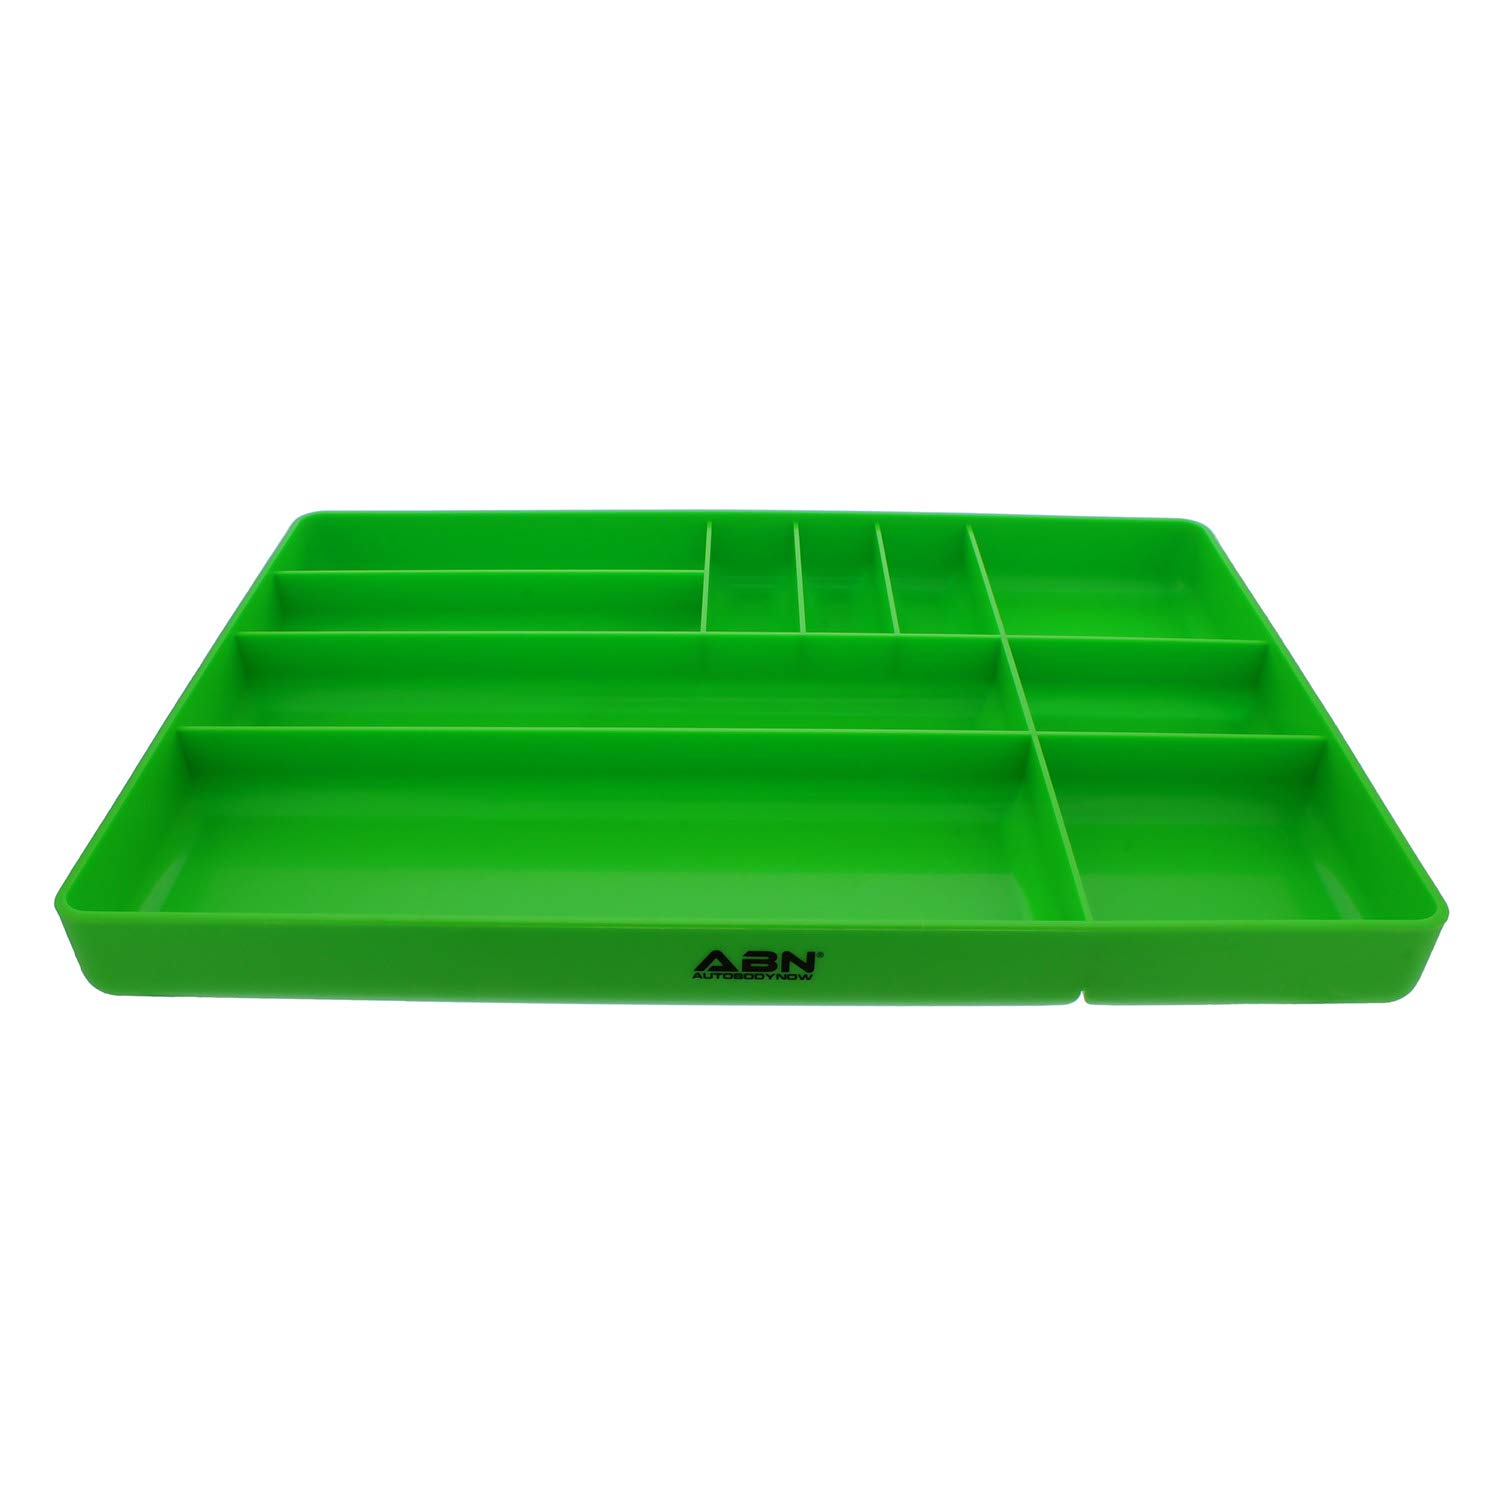 ABN | Toolbox Drawer Organizer Tool Organizer Tool Tray - Tool Drawer Organizer Sorting Tray, 16x11x1.5'' Inch in Green by ABN (Image #2)